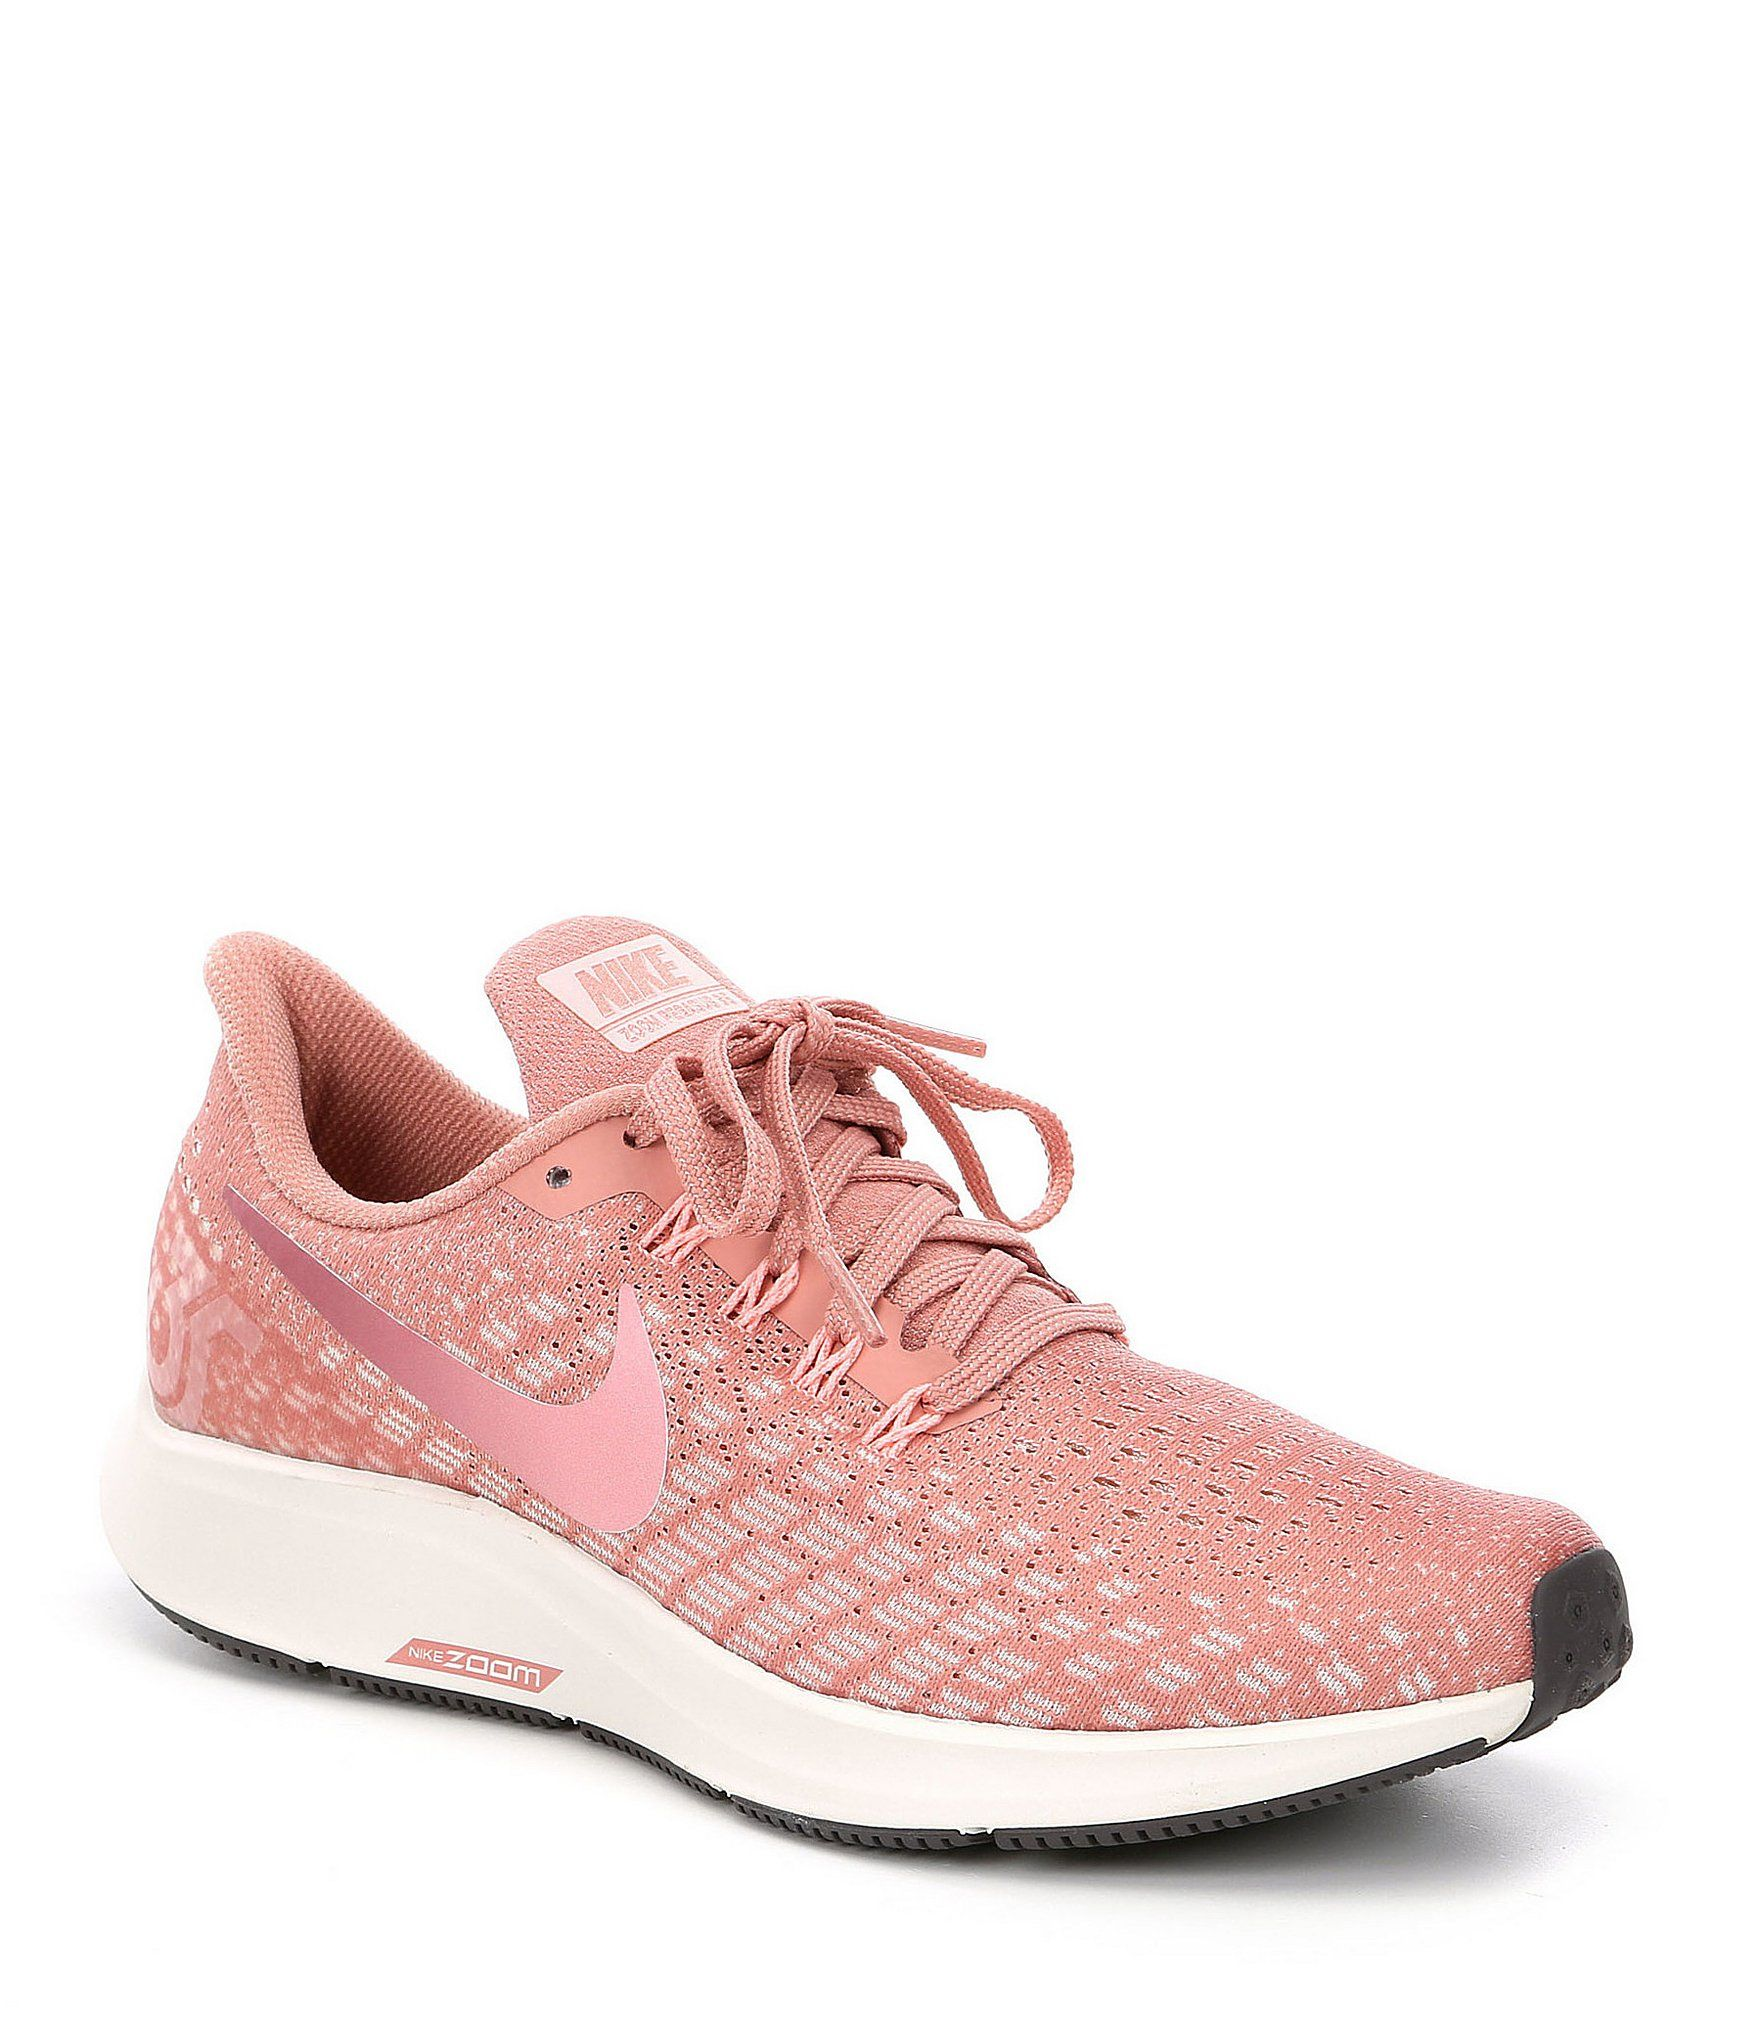 outlet store cb2f5 e8270 tenis nike para mujer, tenis nike mujer blancos, tenis nike mujer negro,  zapatos